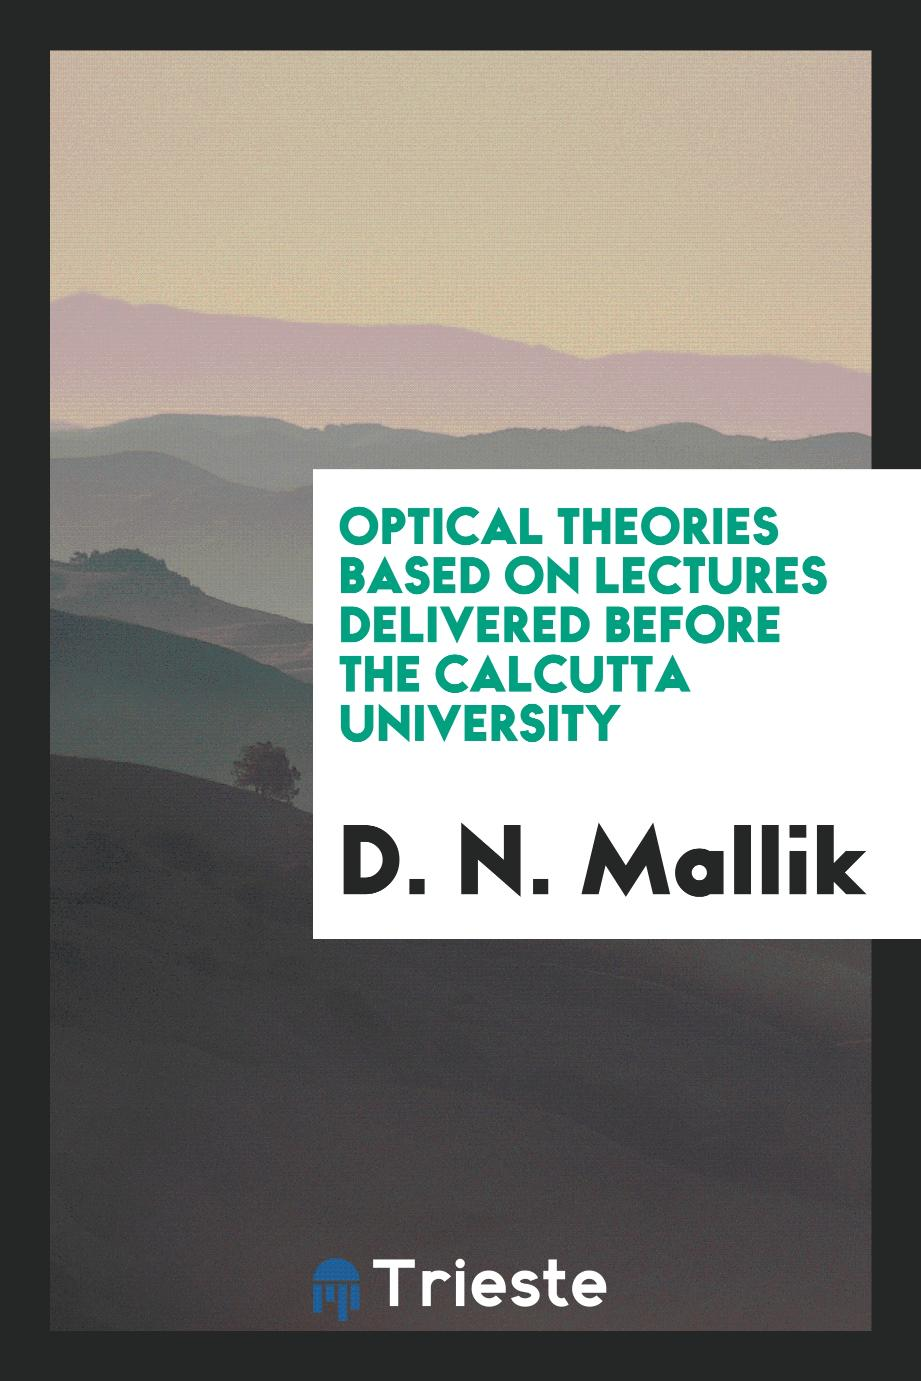 Optical theories based on lectures delivered before the Calcutta University